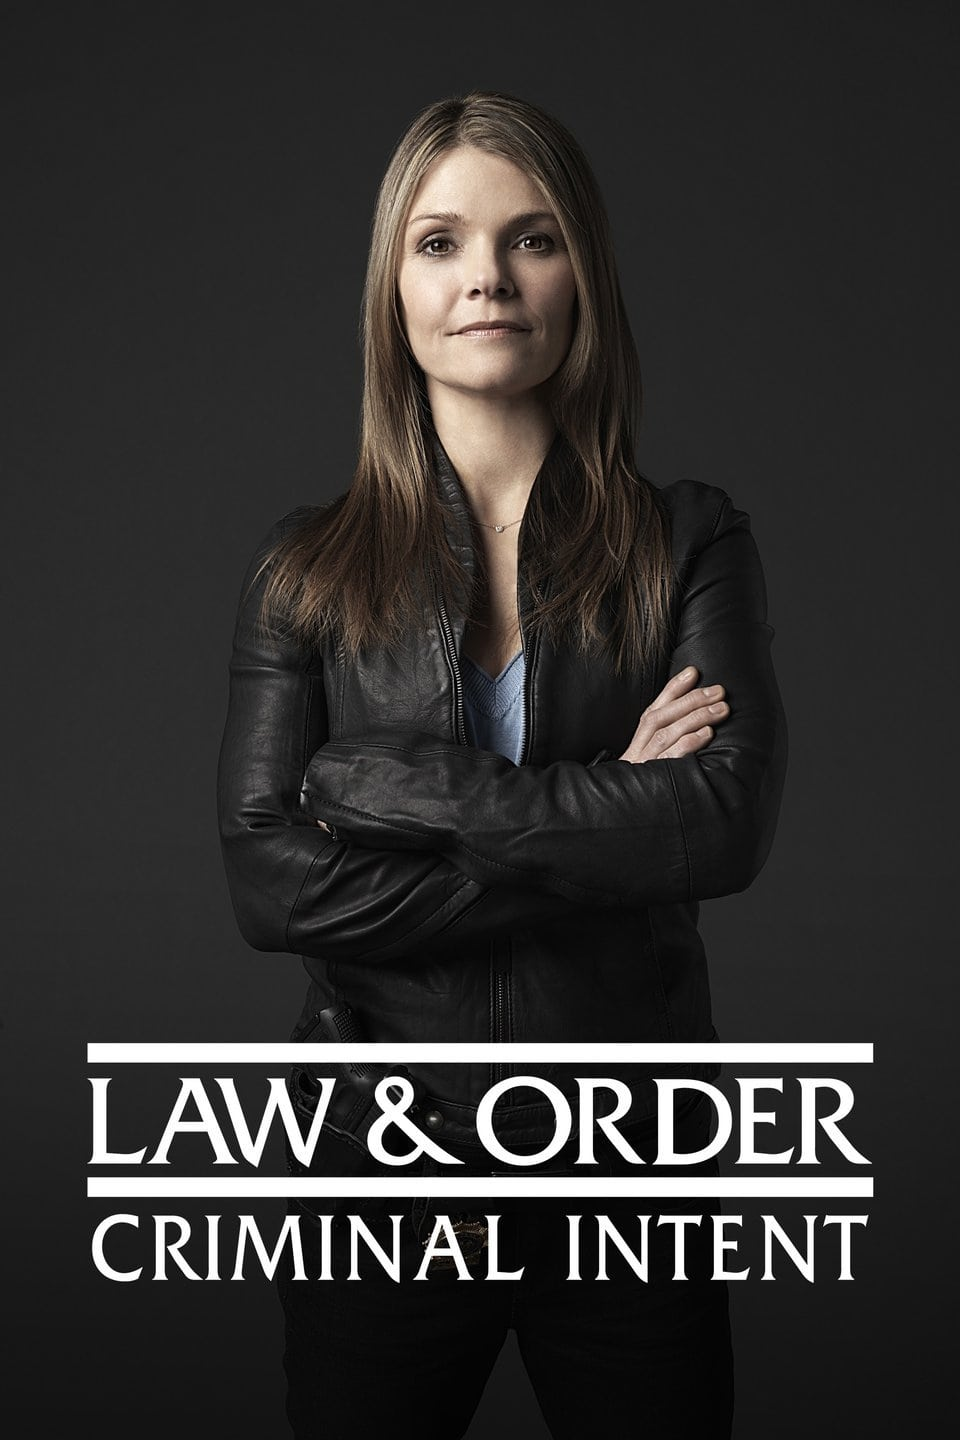 Law & Order: Criminal Intent (2001)